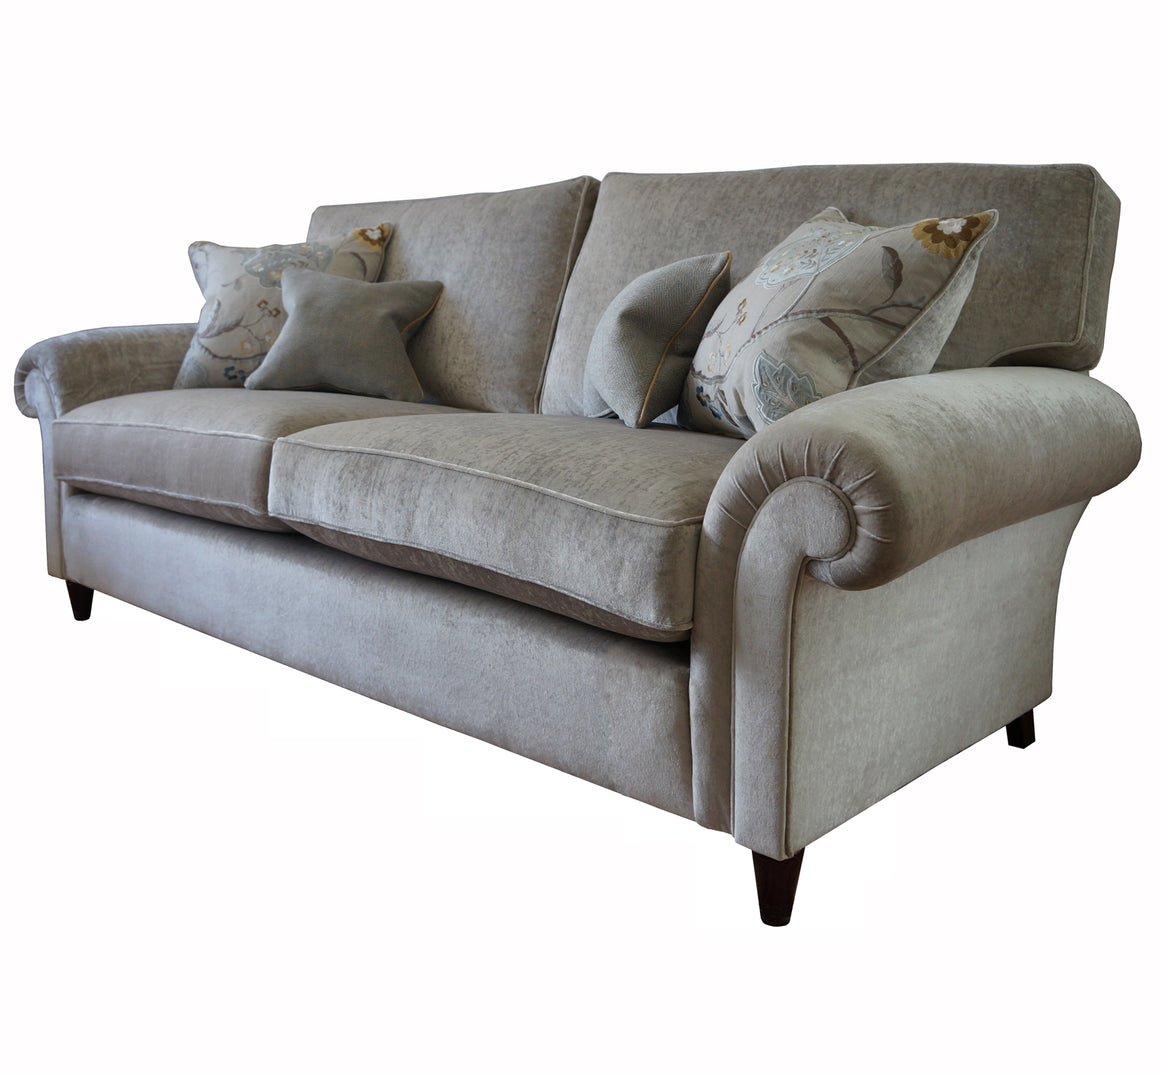 Walton Sofas and chairs HALF PRICE TO ORDER